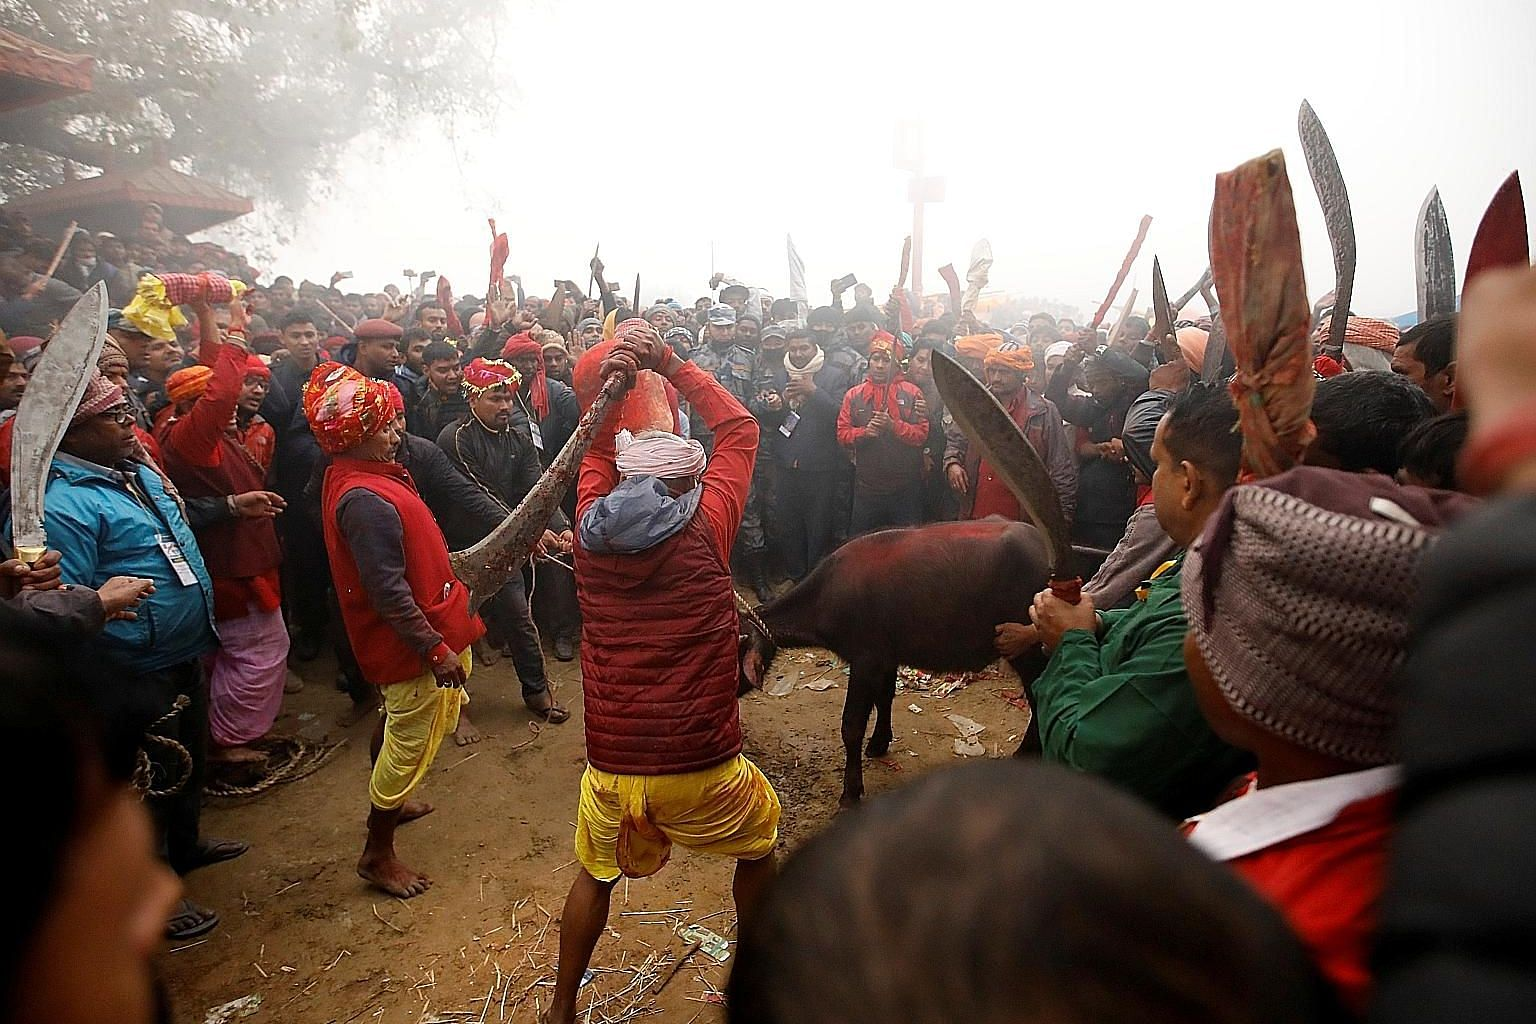 A butcher swinging his blade to sacrifice a buffalo during the Gadhimai Festival held at Bariyarpur in Nepal yesterday. PHOTO: REUTERS